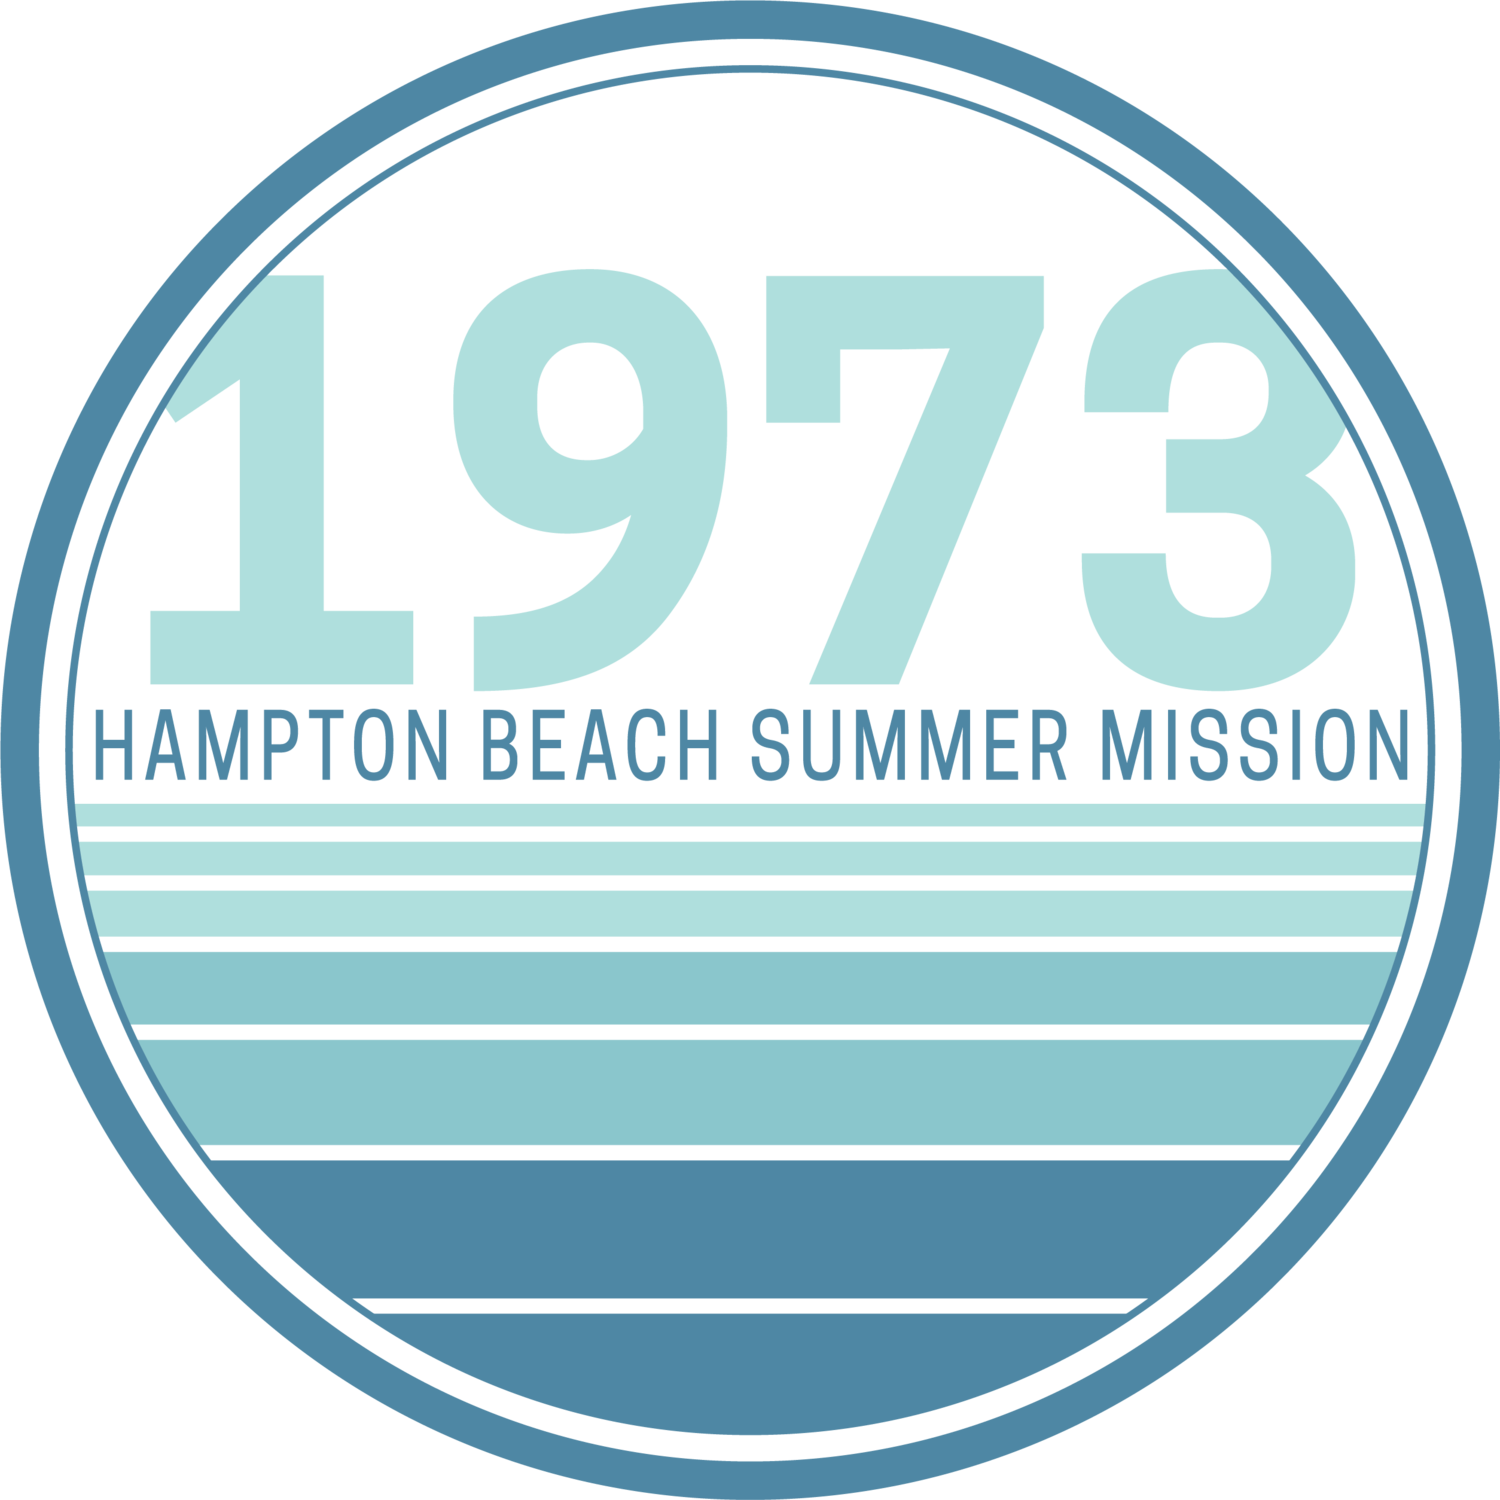 Hampton Beach Summer Mission